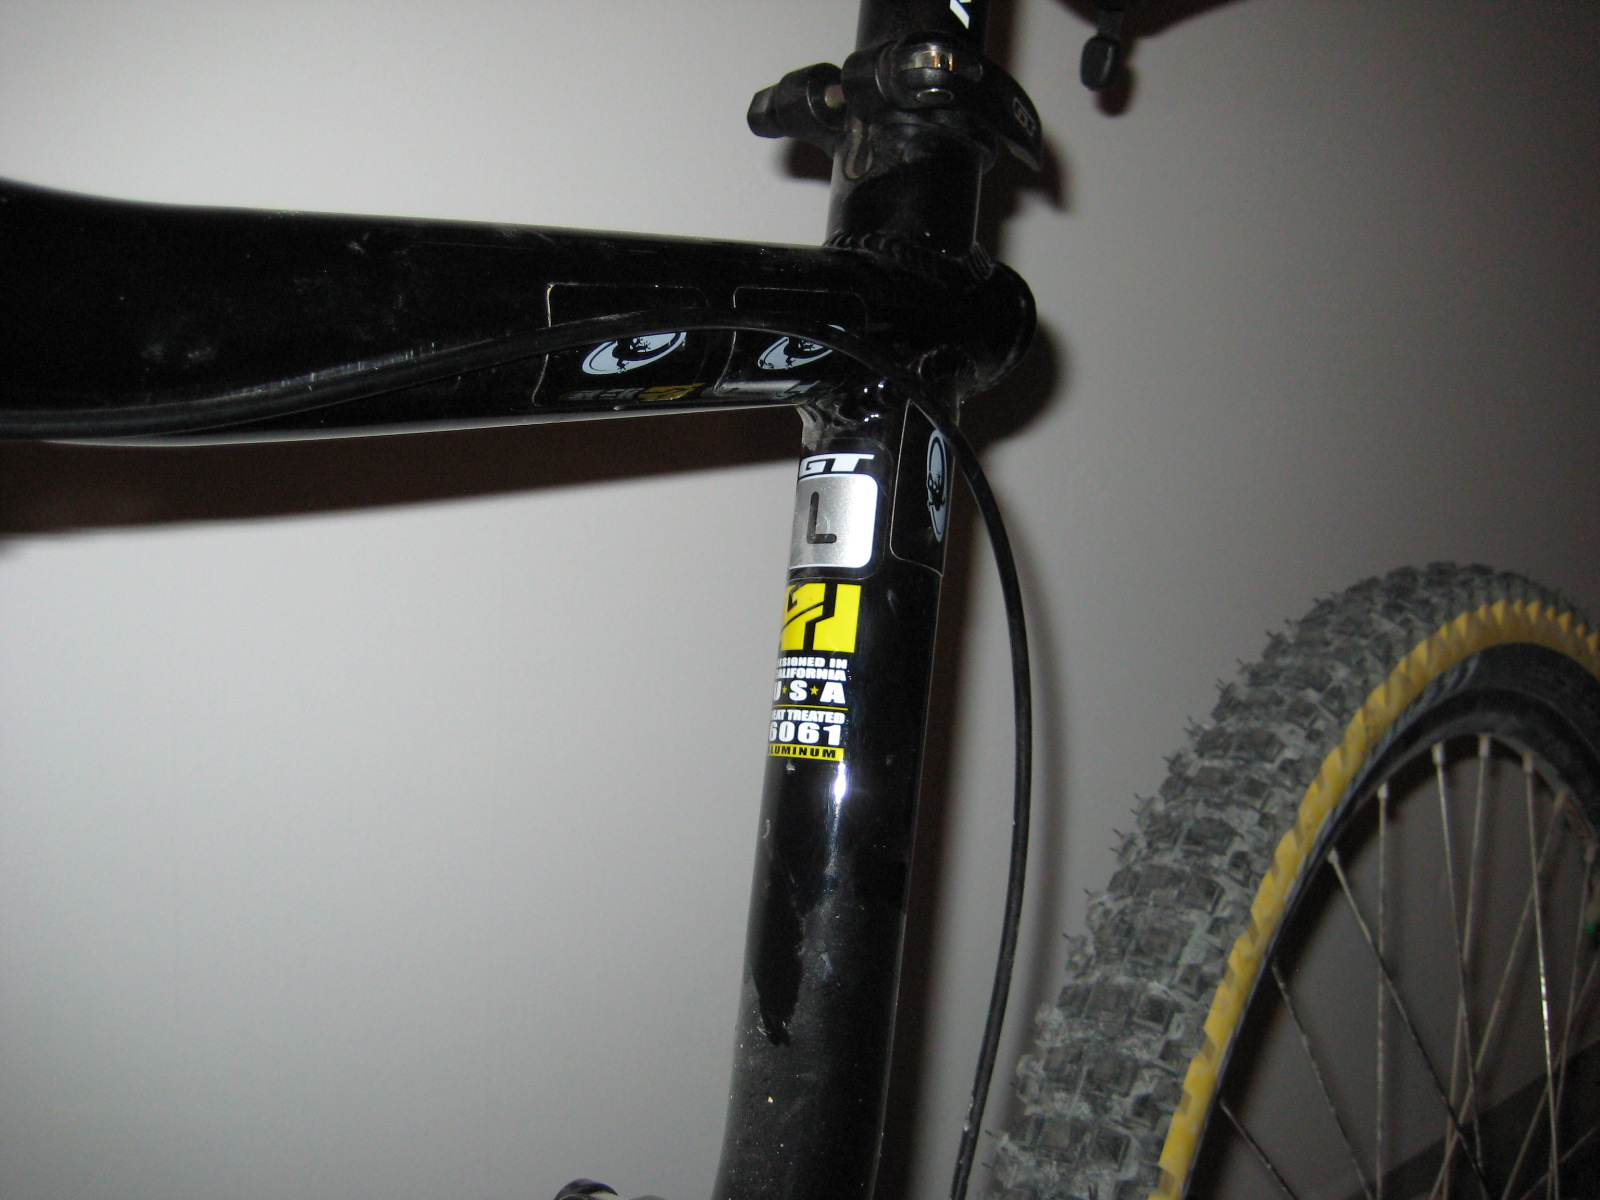 Upgrades / Mods for GT Marathon Elite-img_2005.jpg